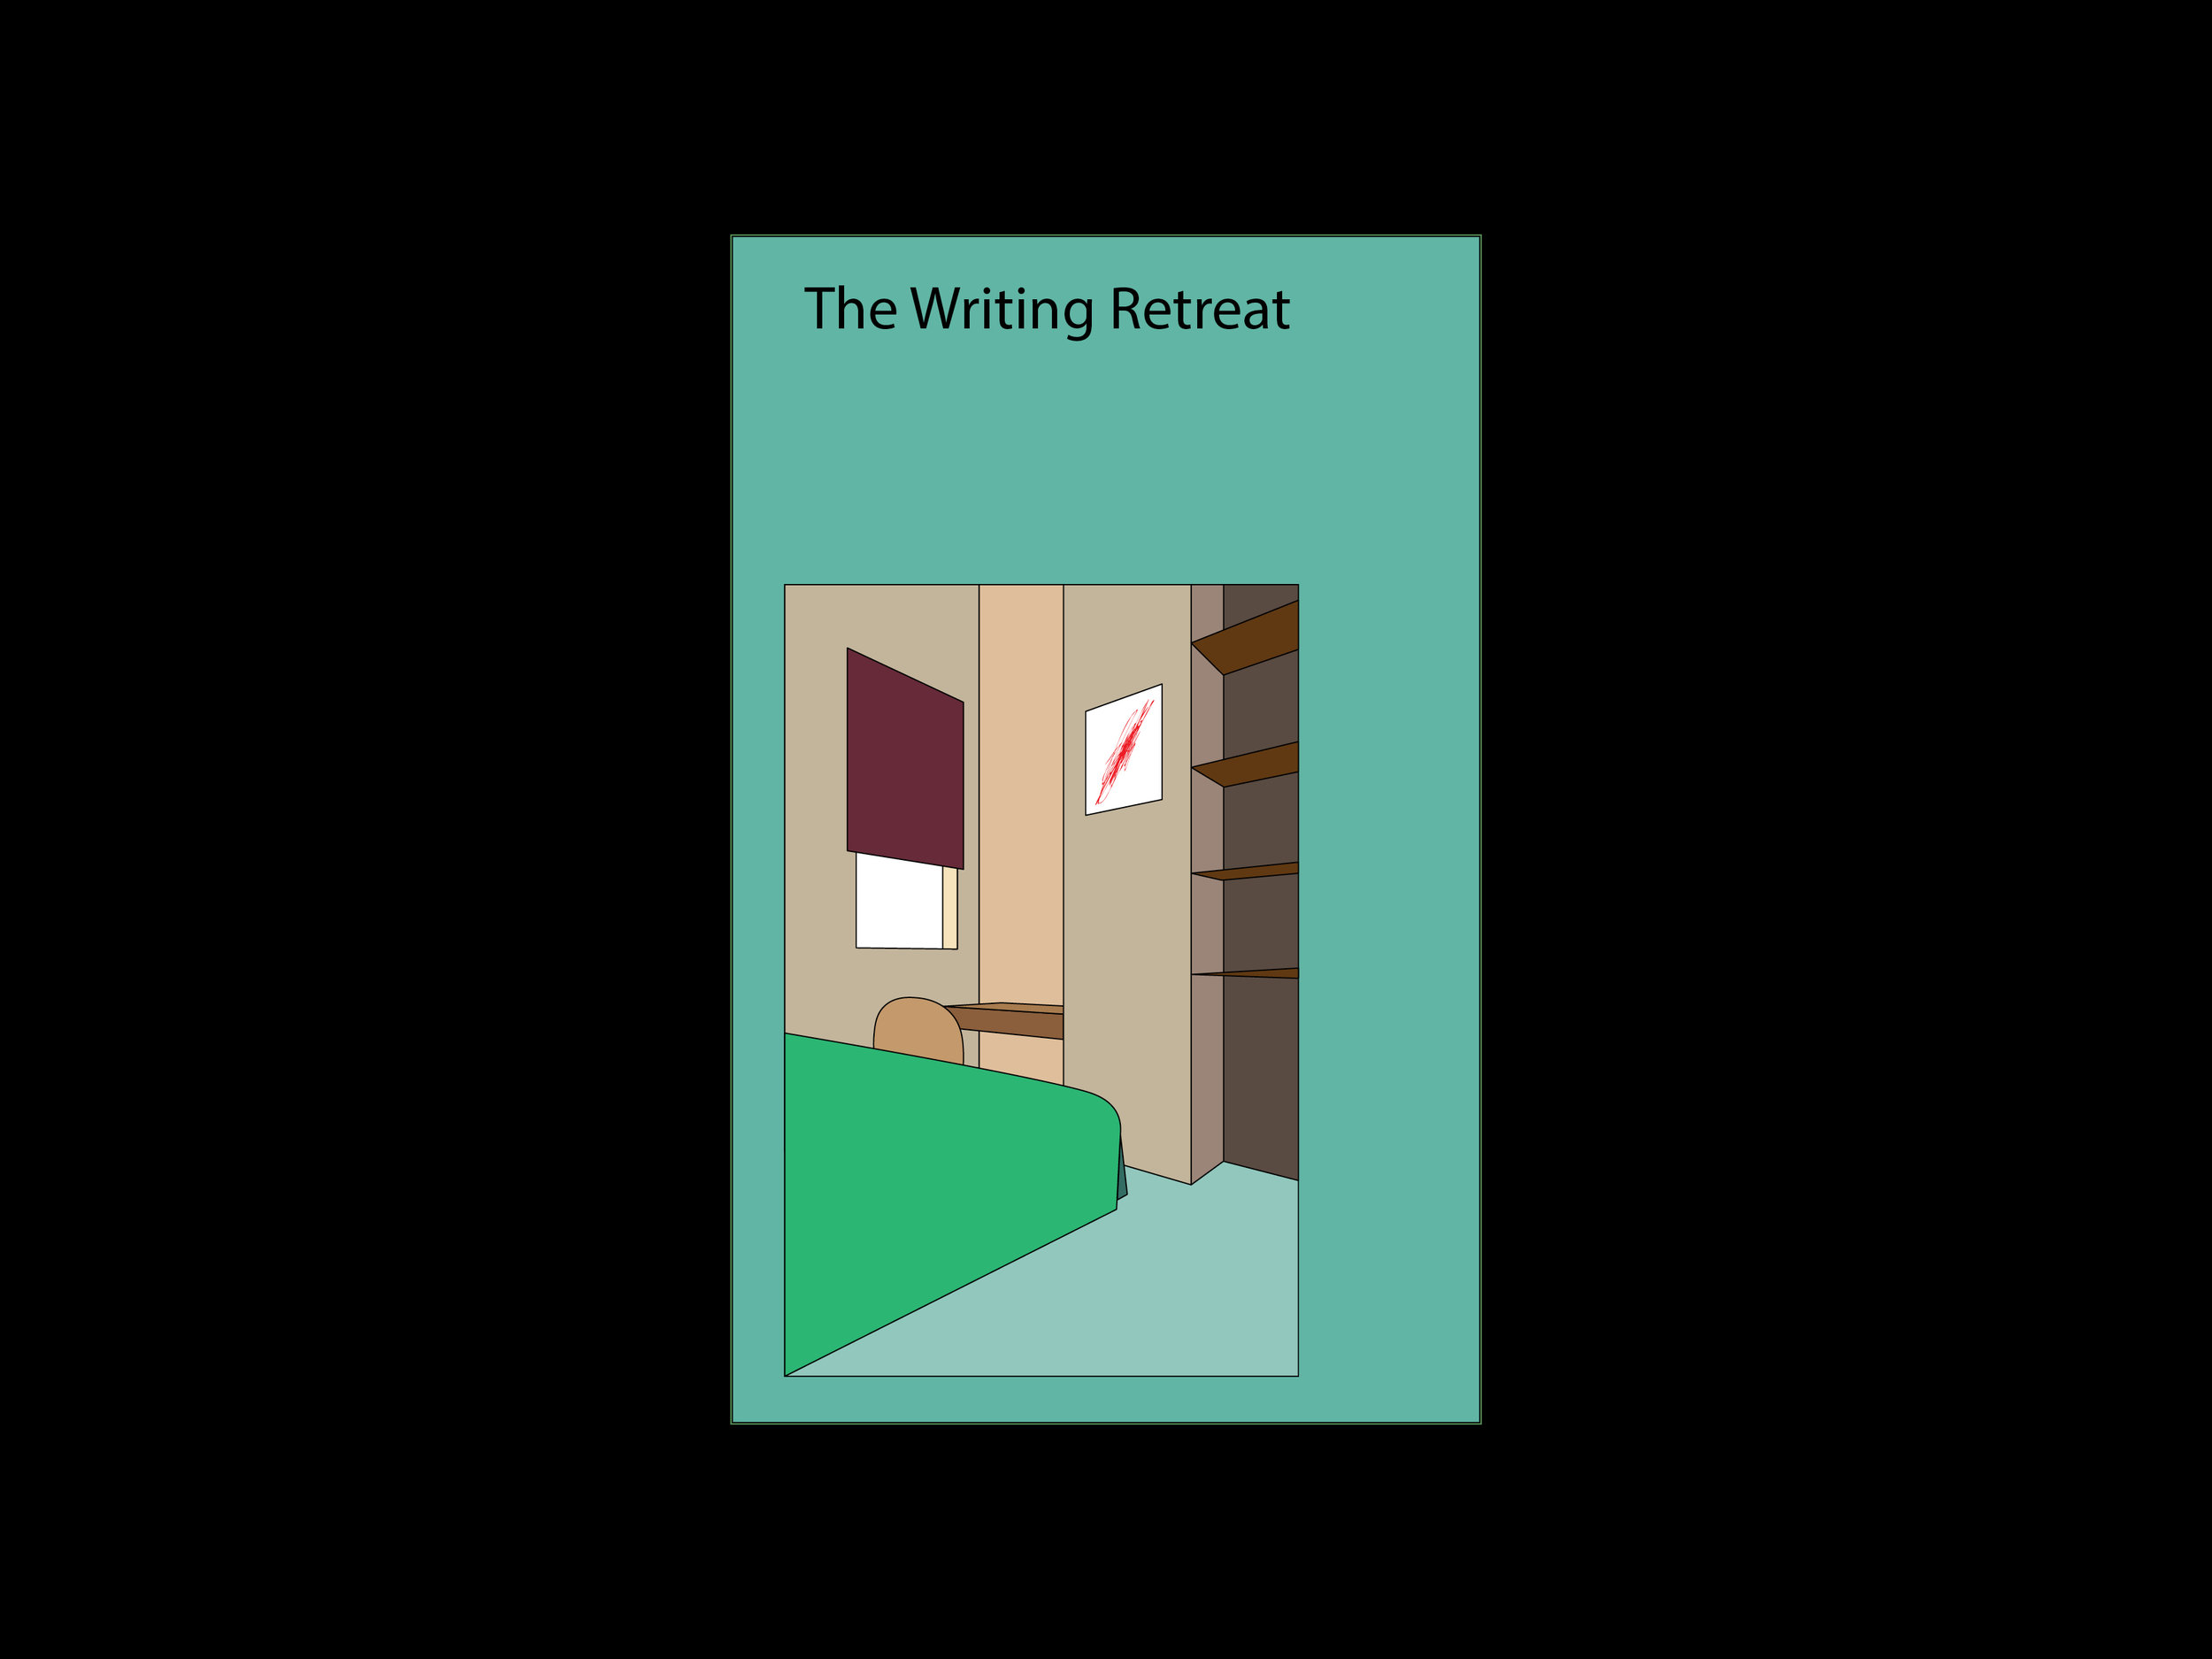 The writing retreat-Website images A.jpg